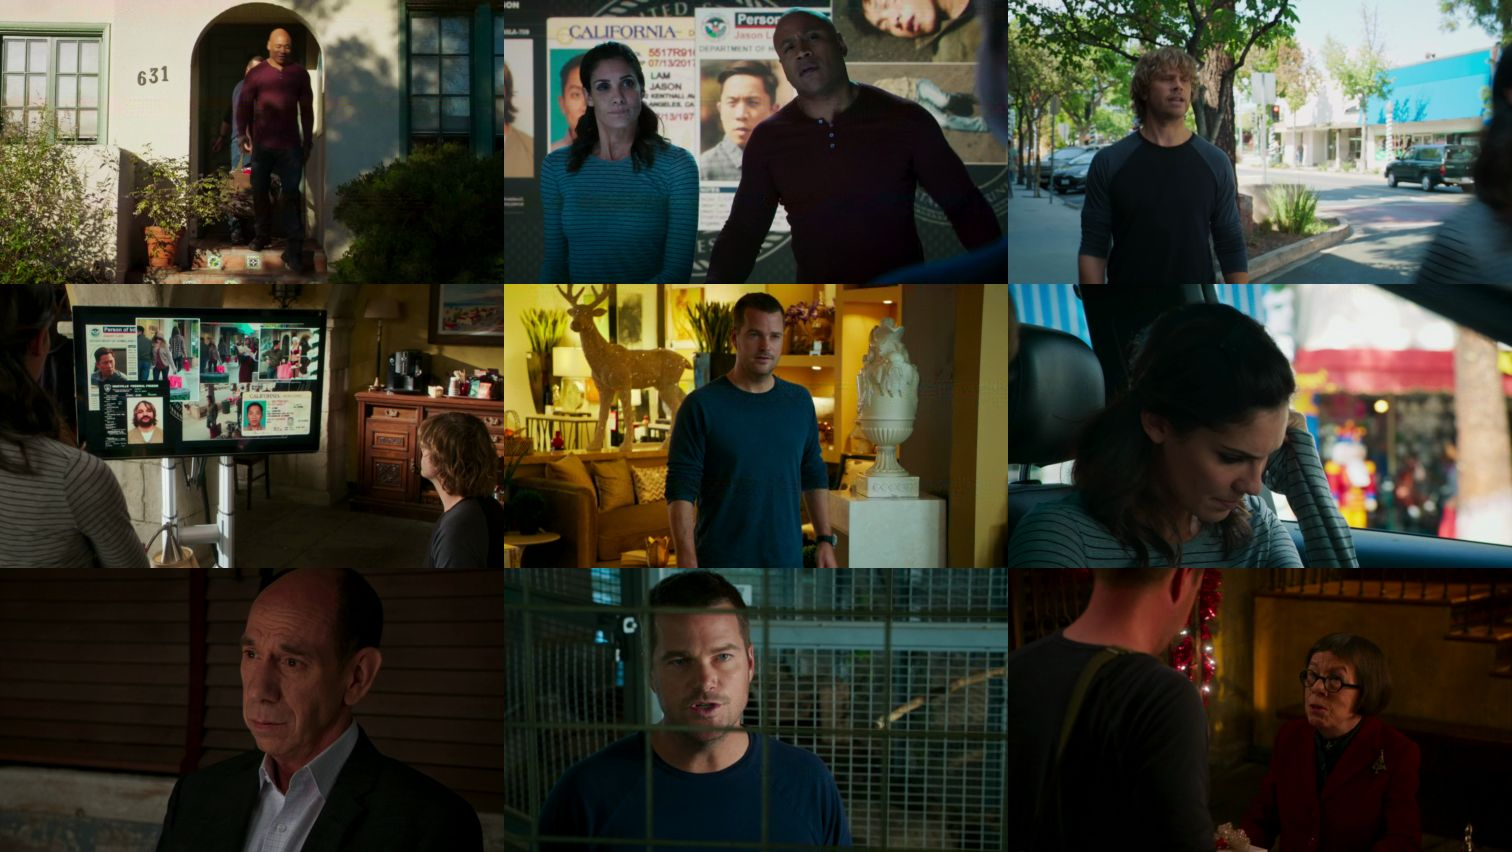 NCIS Los Angeles S07E11 720p HDTV X264-DIMENSION